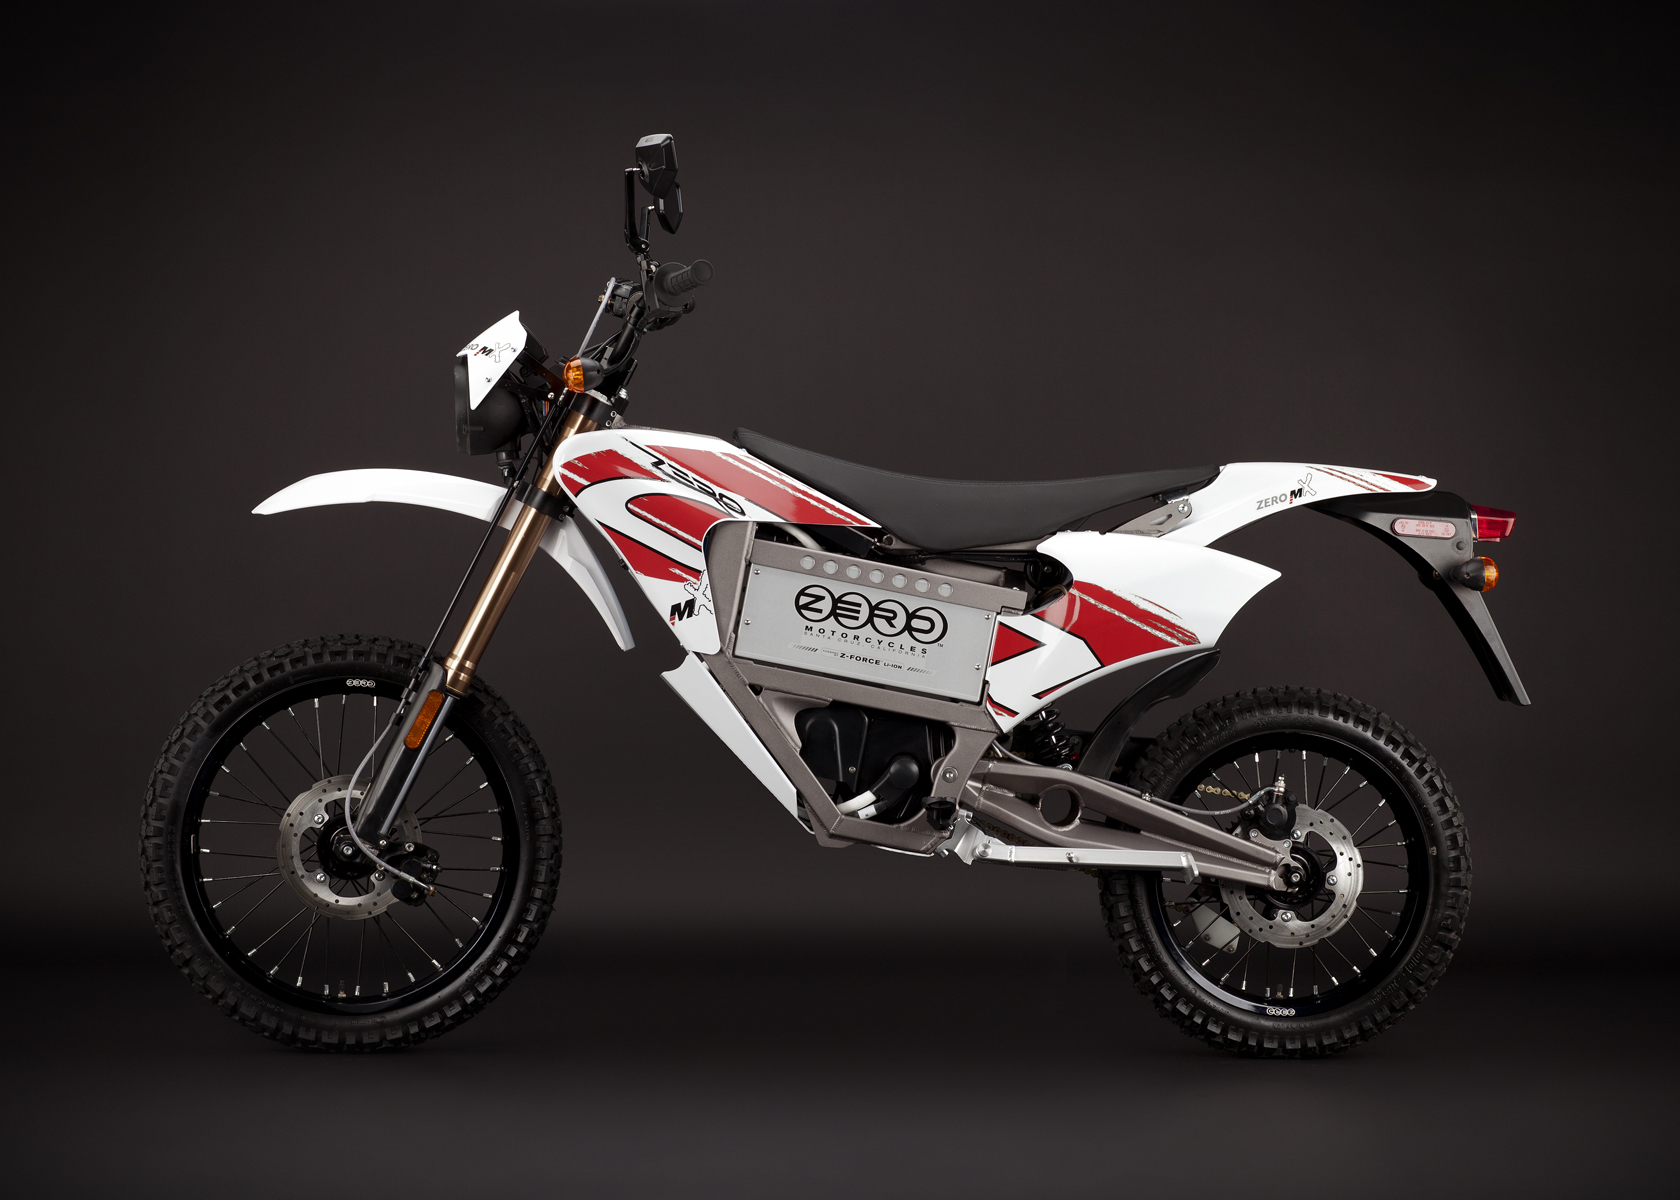 2011 Zero MX Electric Motorcycle: Profile Left, Street Legal Model